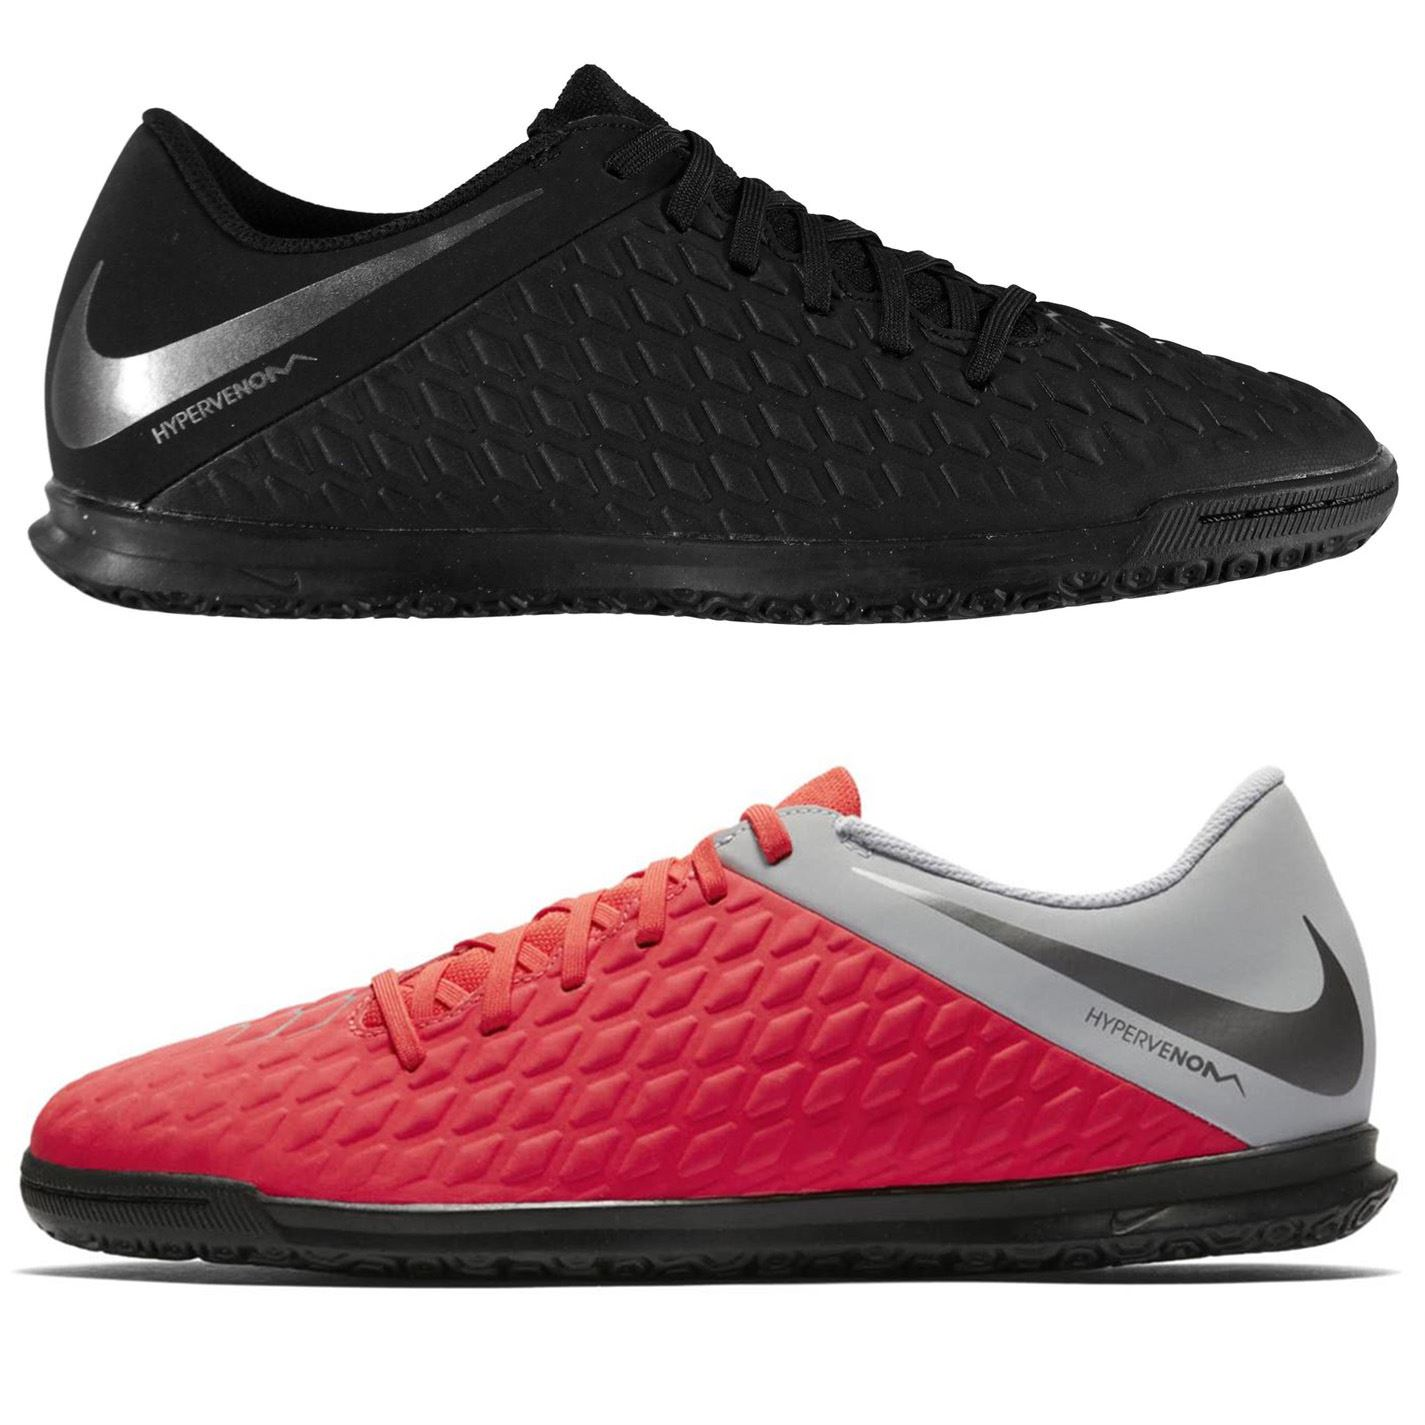 4f4882c8e21 ... Scarpe Nike Hypervenom Phantom Club calcio Indoor Trainer Mens Soccer  Futsal ...